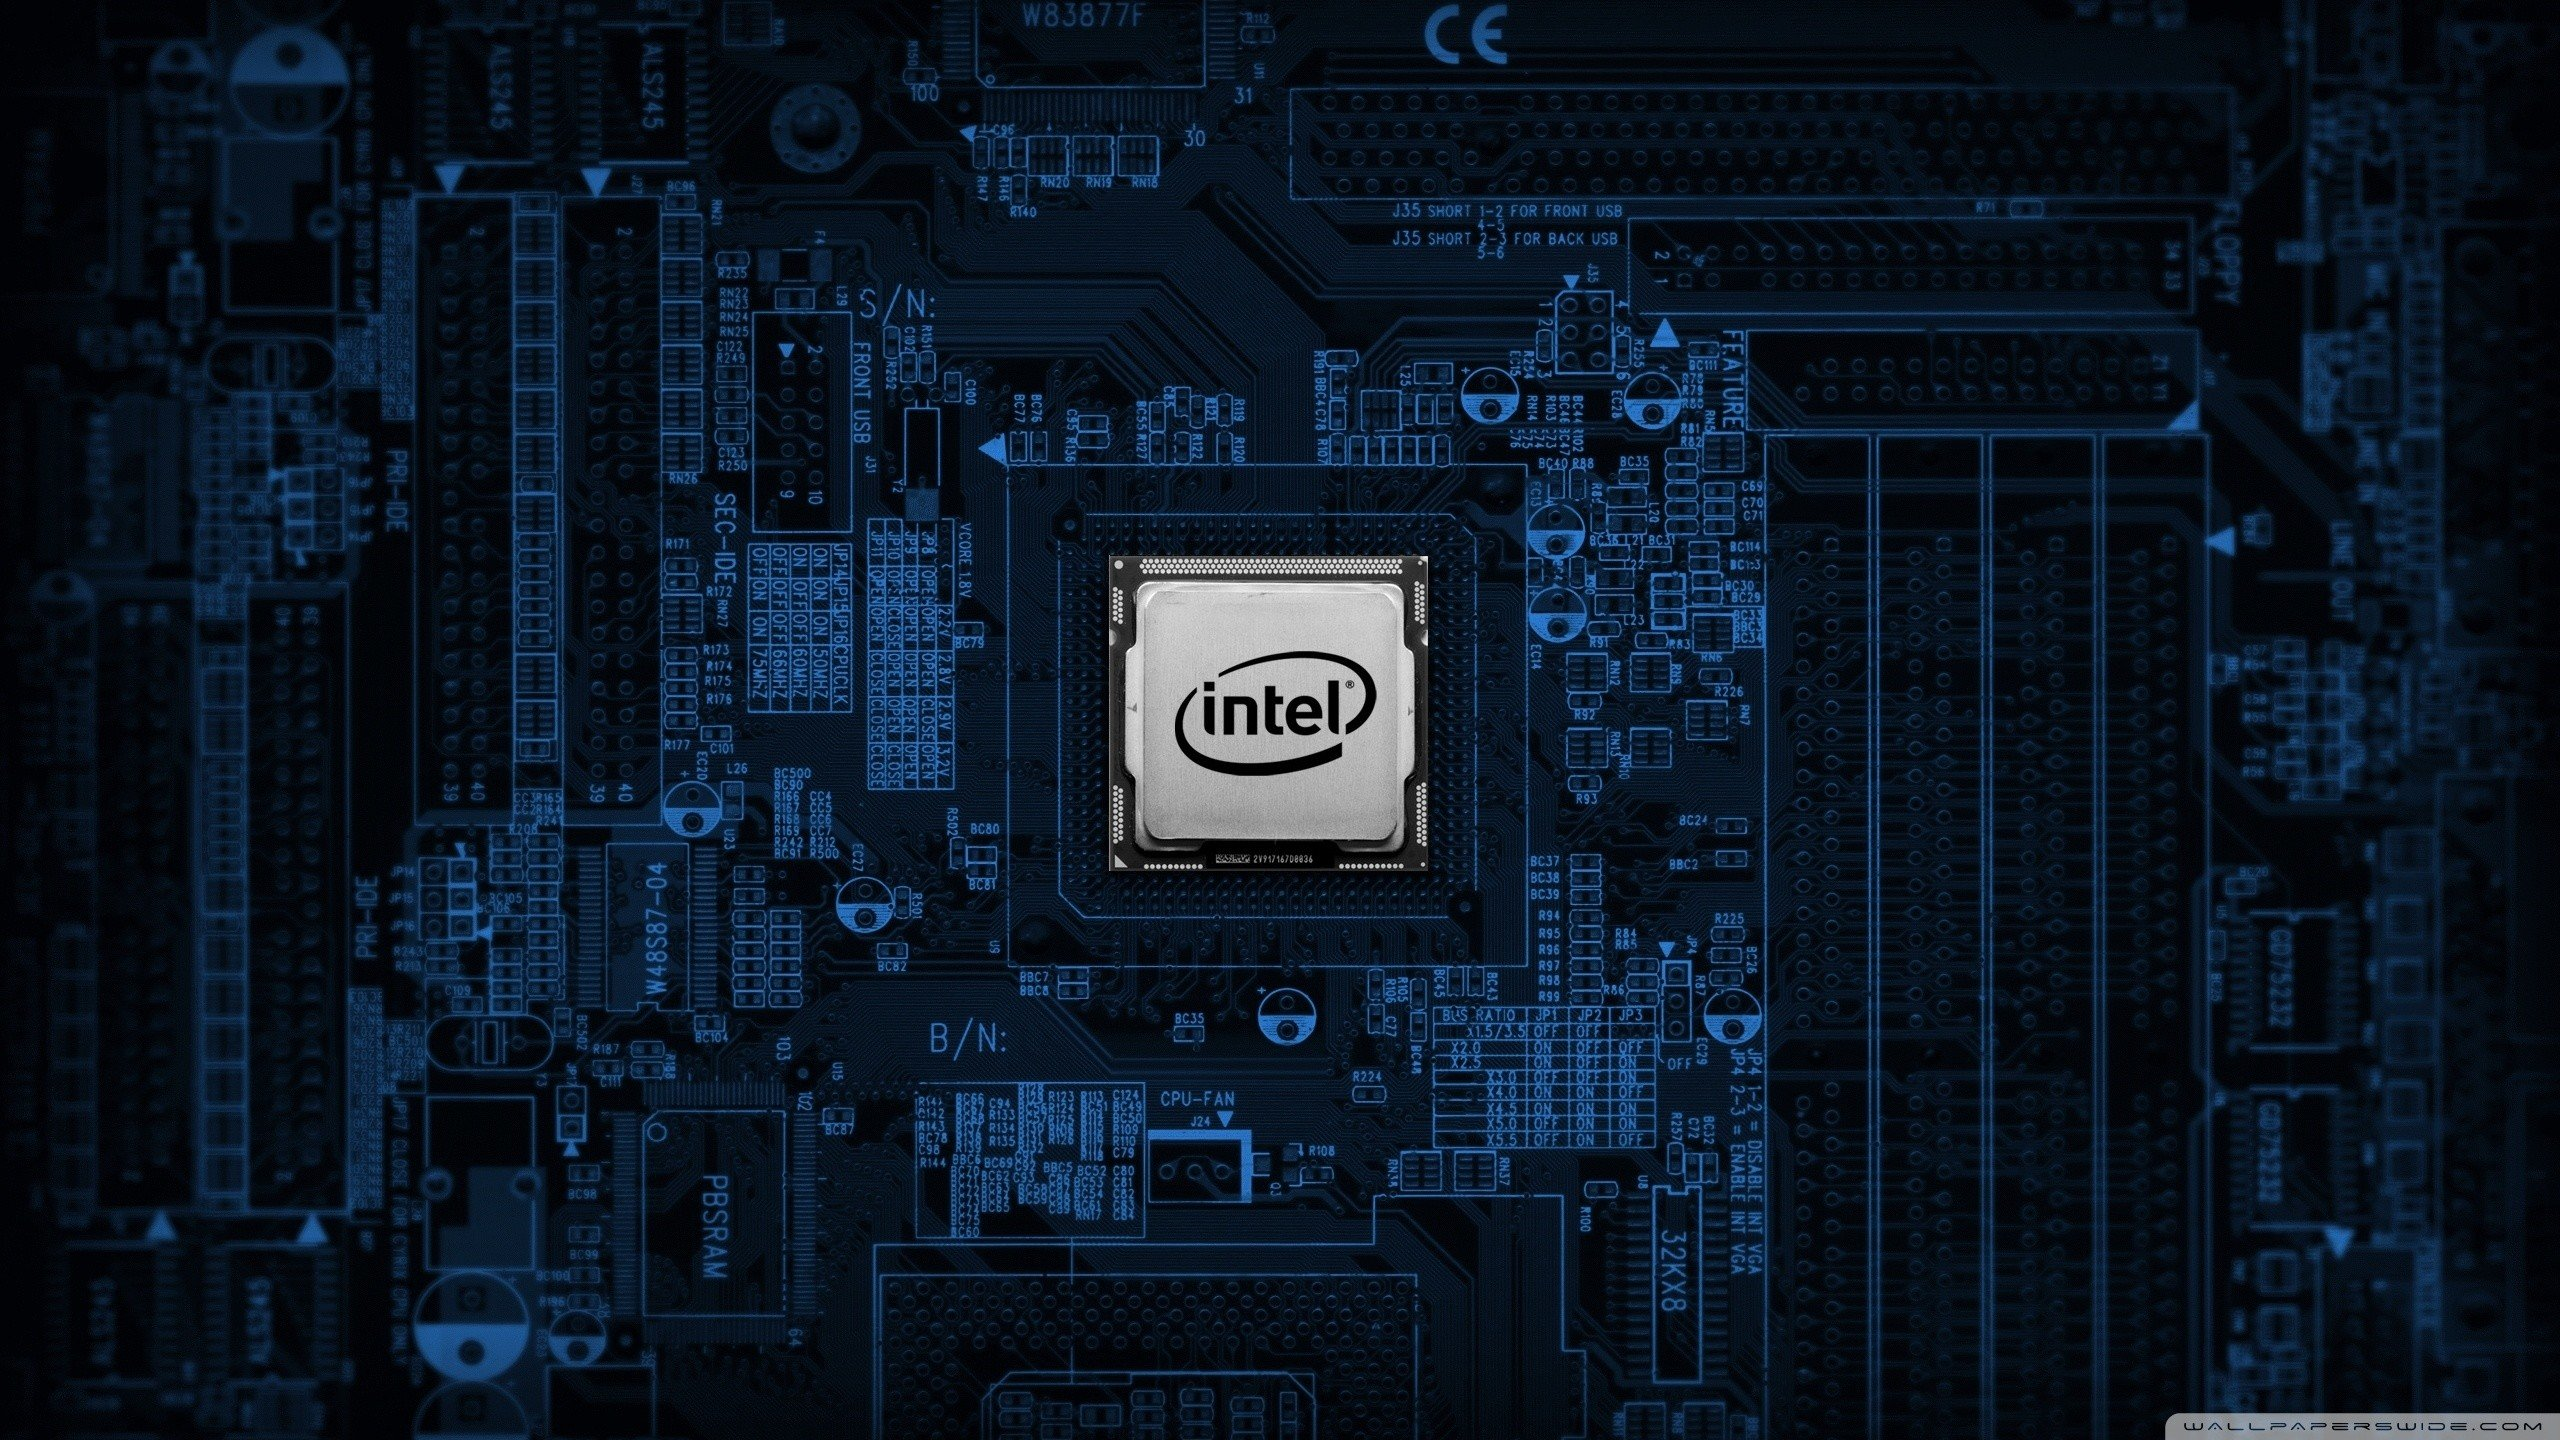 66 Motherboard Hd Wallpapers on WallpaperPlay 2560x1440